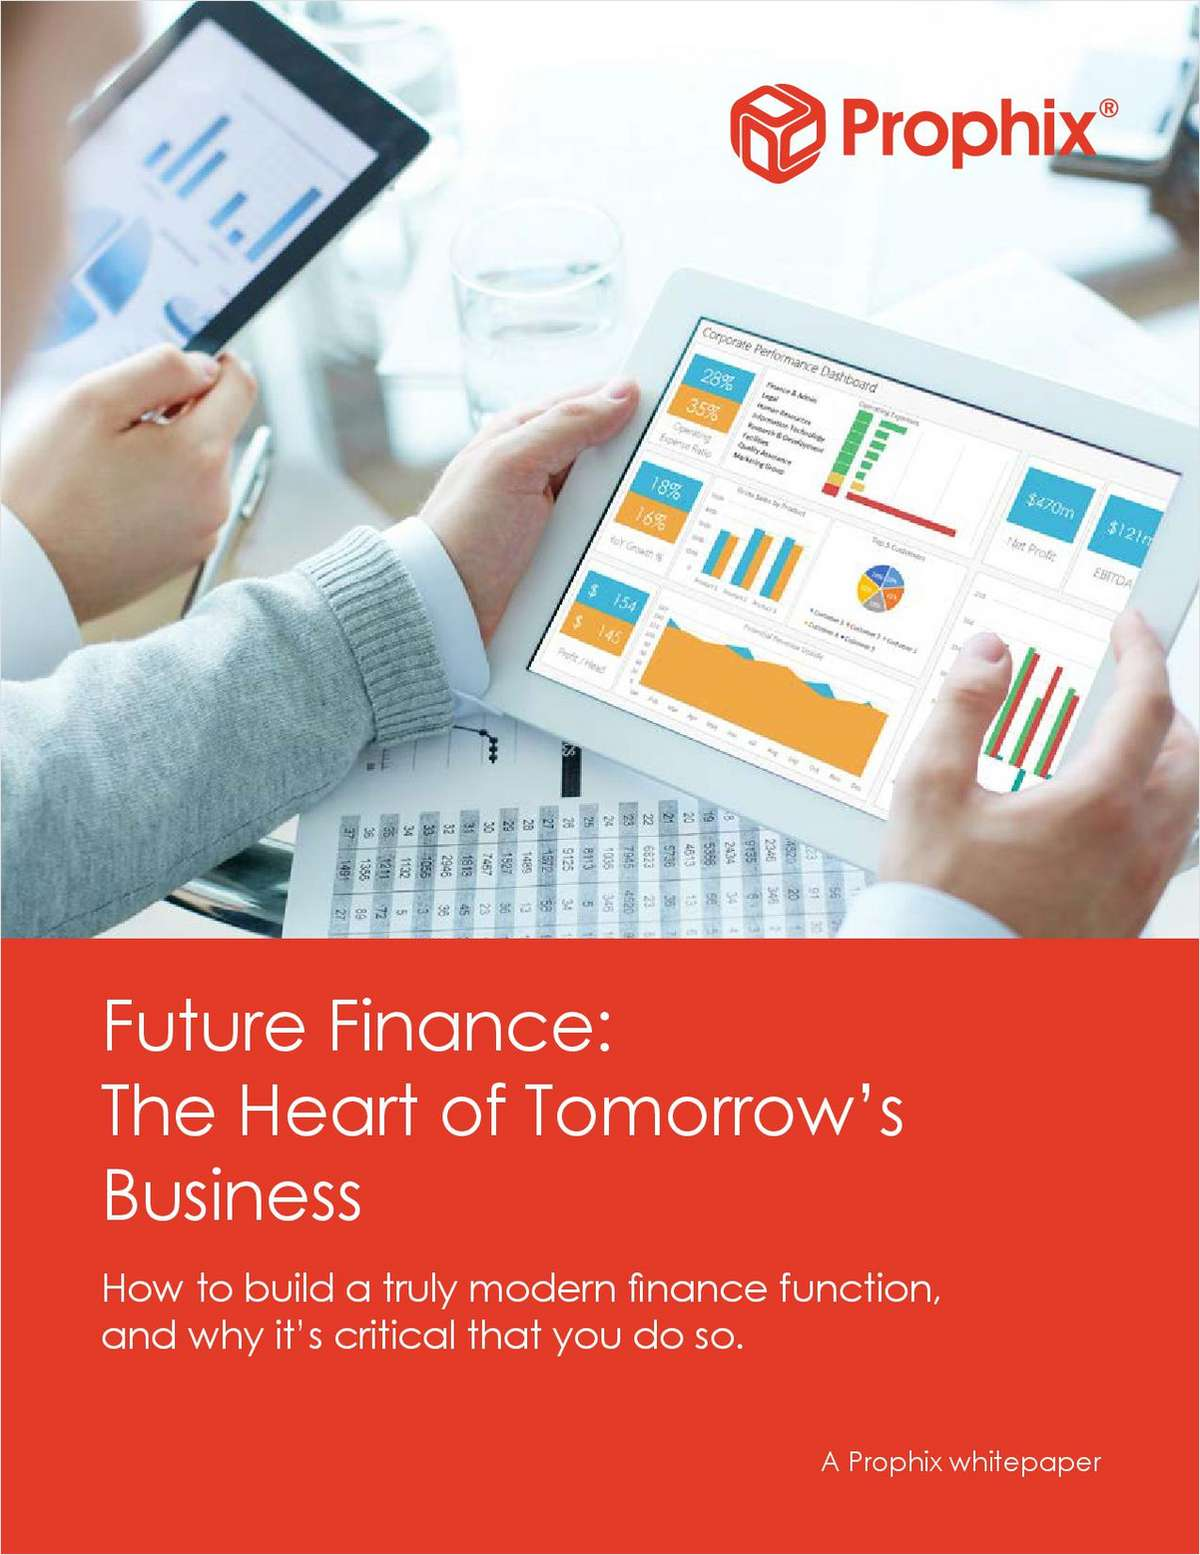 Future Finance: The Heart of Tomorrow's Business